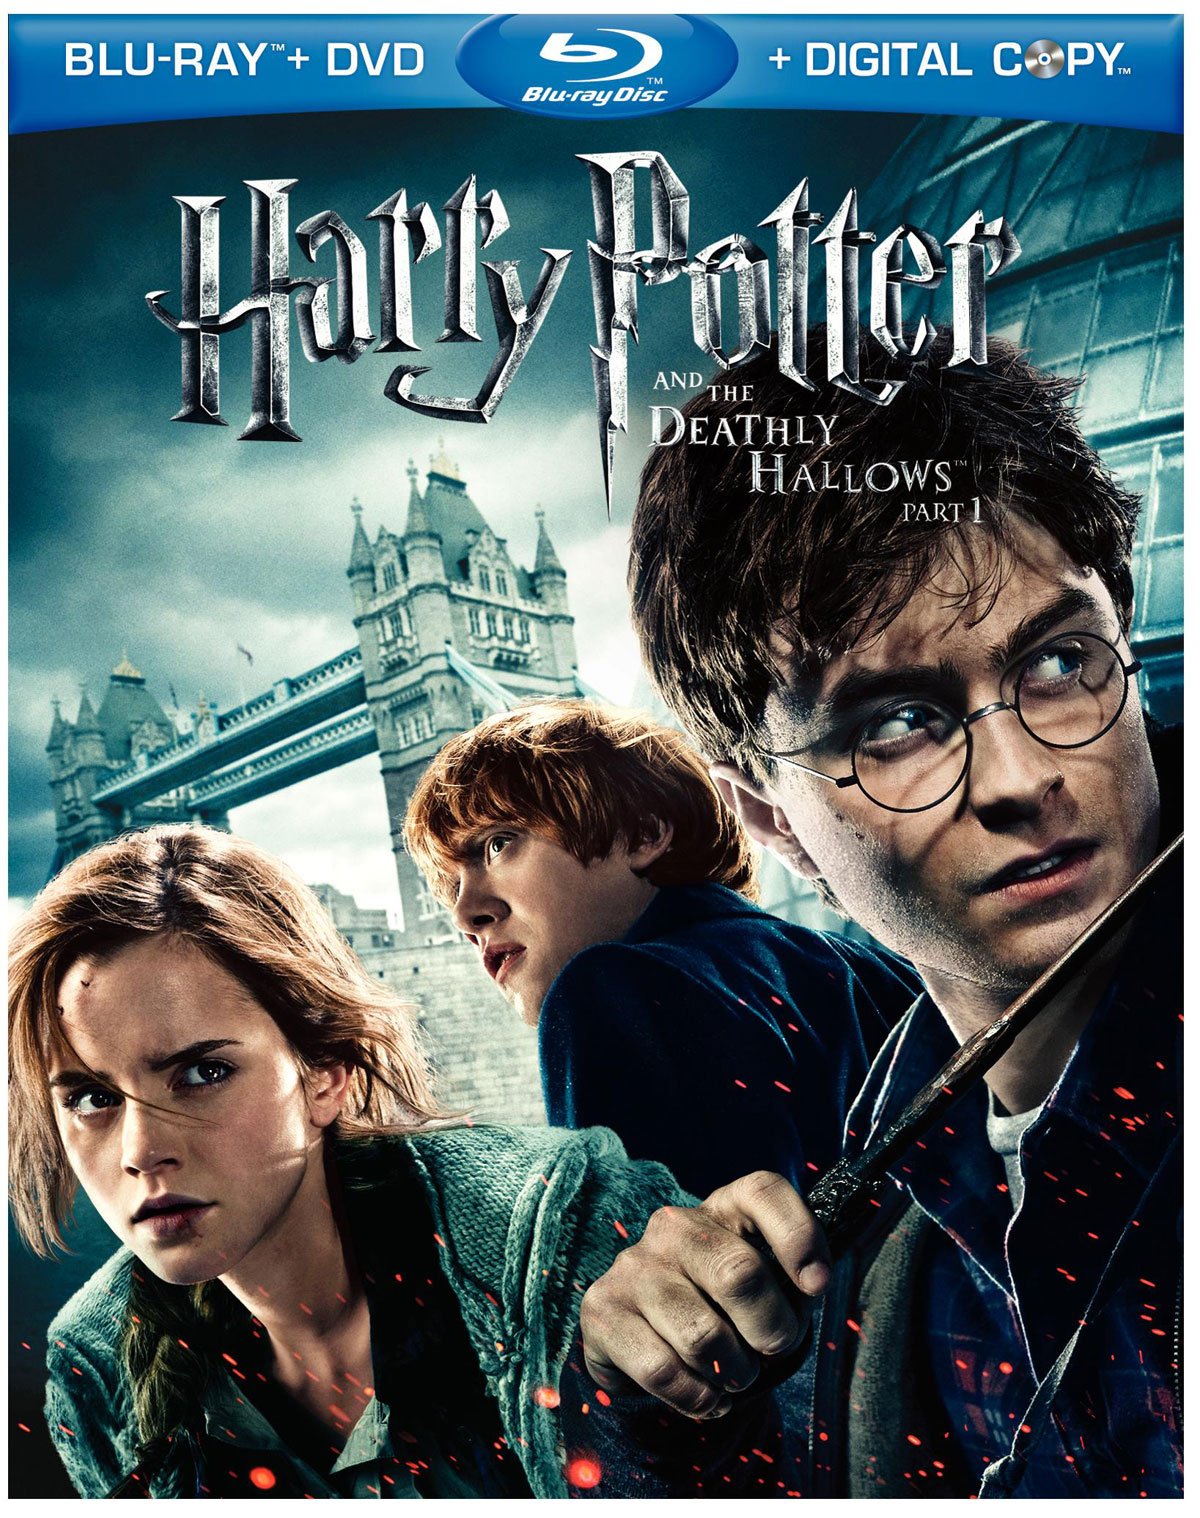 http://3.bp.blogspot.com/-38a7uI0dZiM/TZwArG6wFlI/AAAAAAAAE3A/Q7RMqz773t0/s1600/Harry-Potter-and-the-Deathly-Hallows-Part-1-Blu-ray-2.jpg